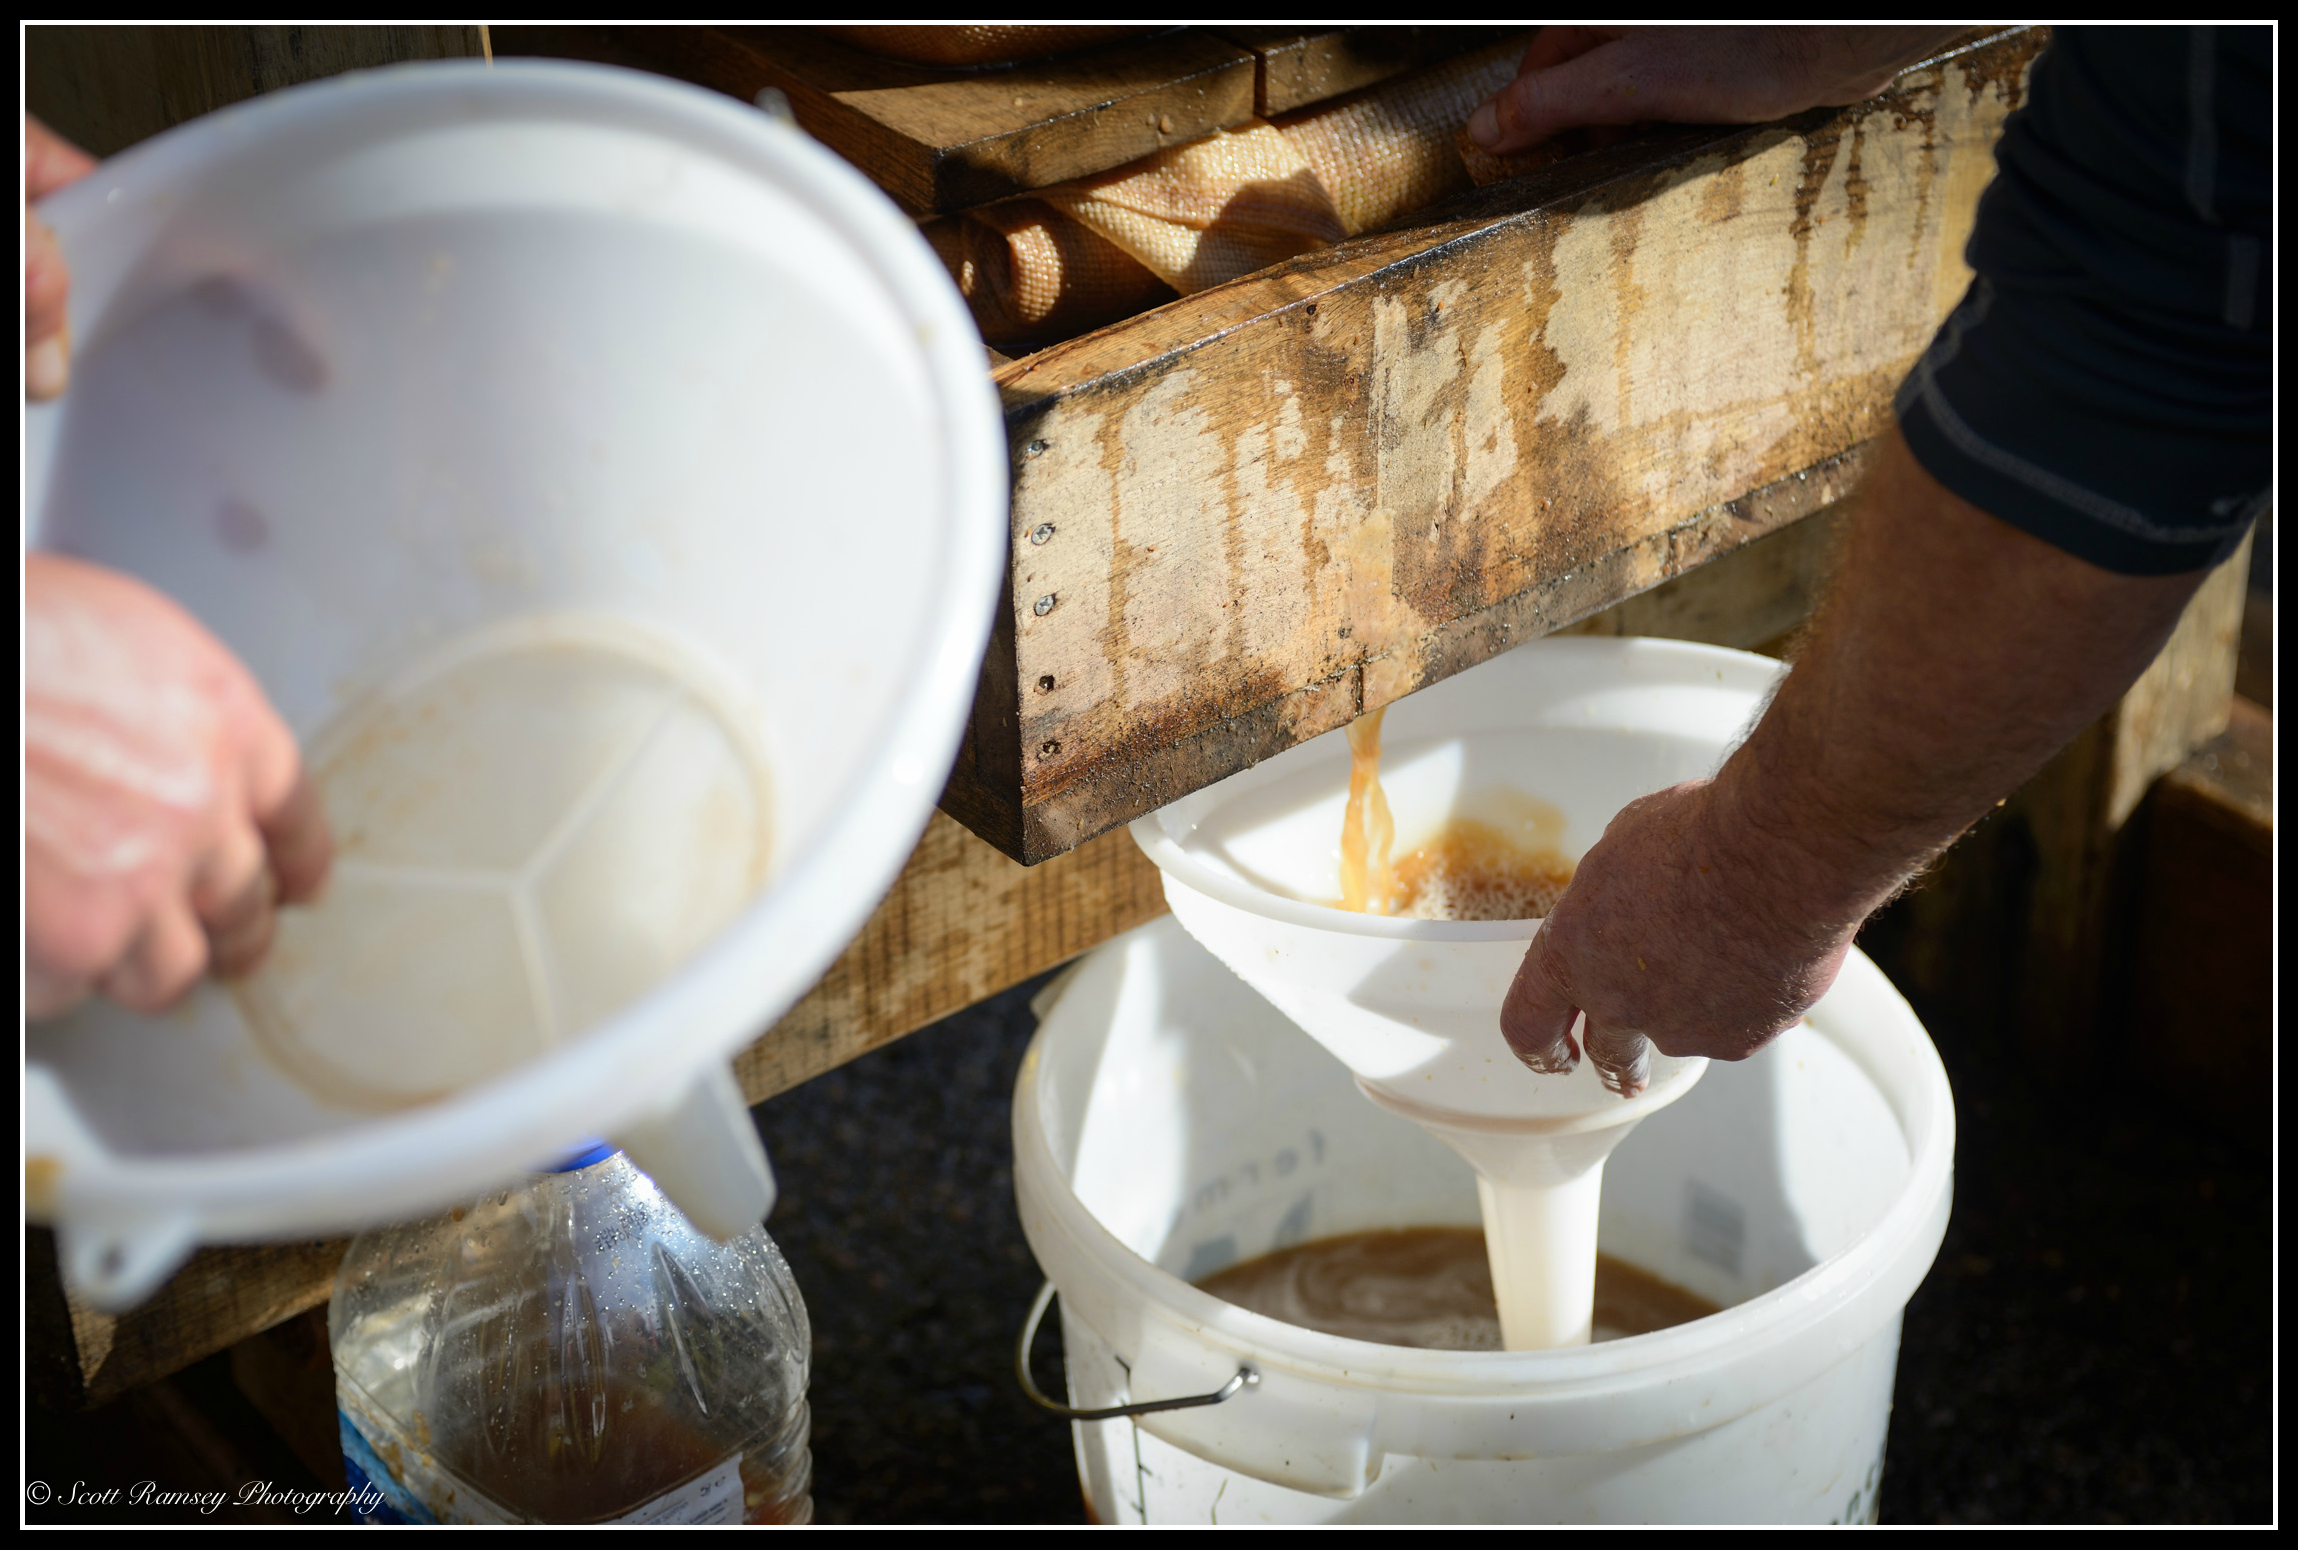 Just a trickle now, every last drop of the freshly squeezed apple juice is collected during the pressing process.